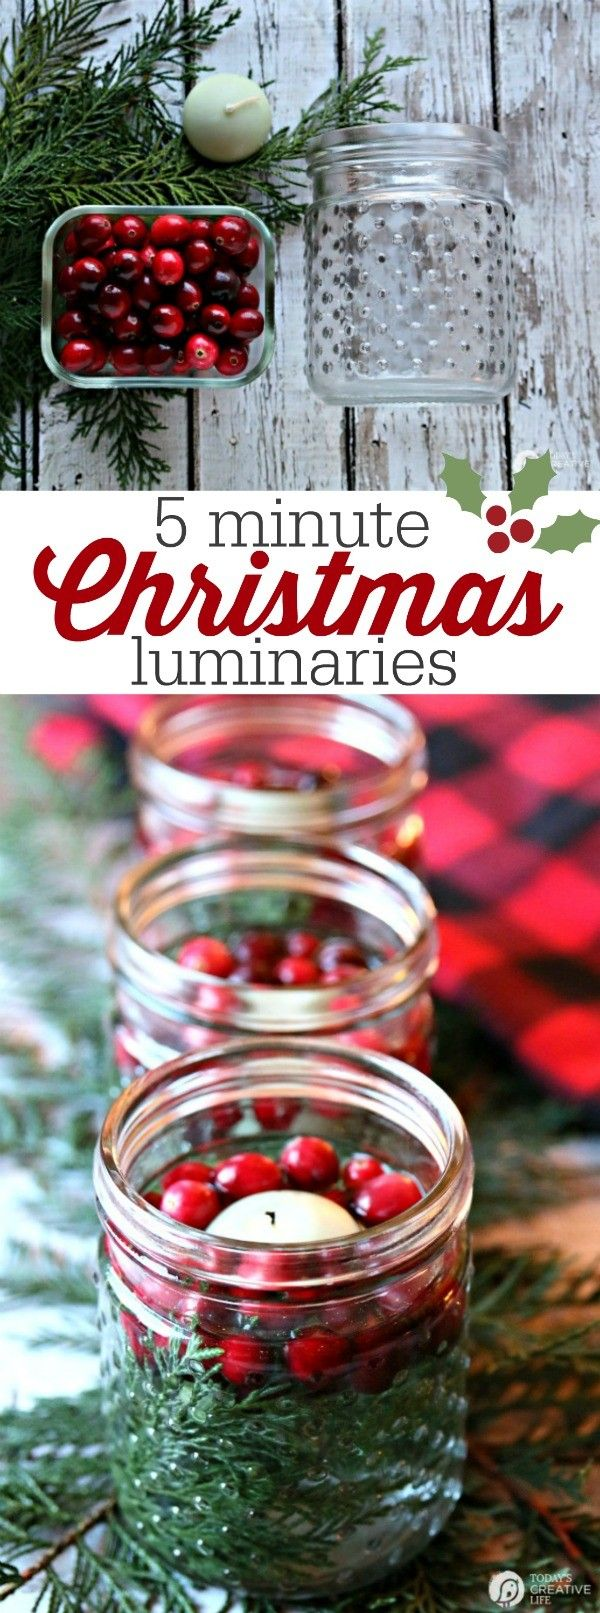 101 handmade christmas ornament ideas - 5 Minute Cranberry Cedar Christmas Luminaries